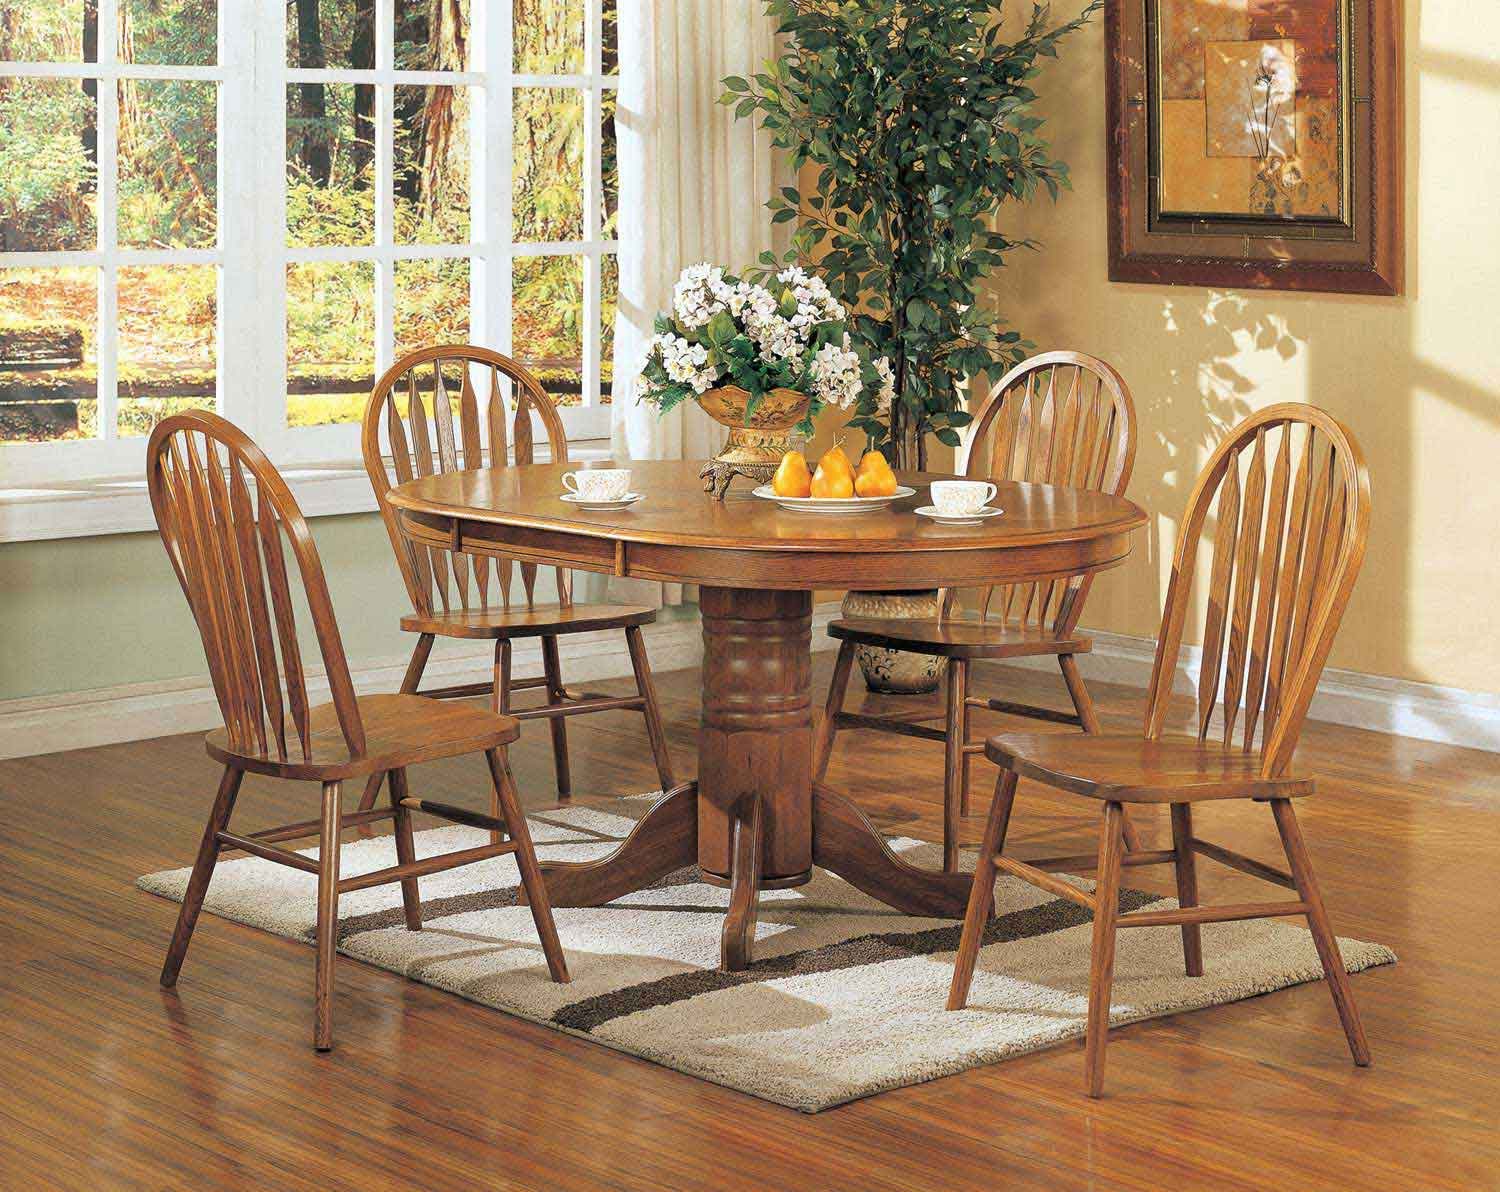 Coaster Mackinaw 5264N Oval Dining Set A - Warm Oak